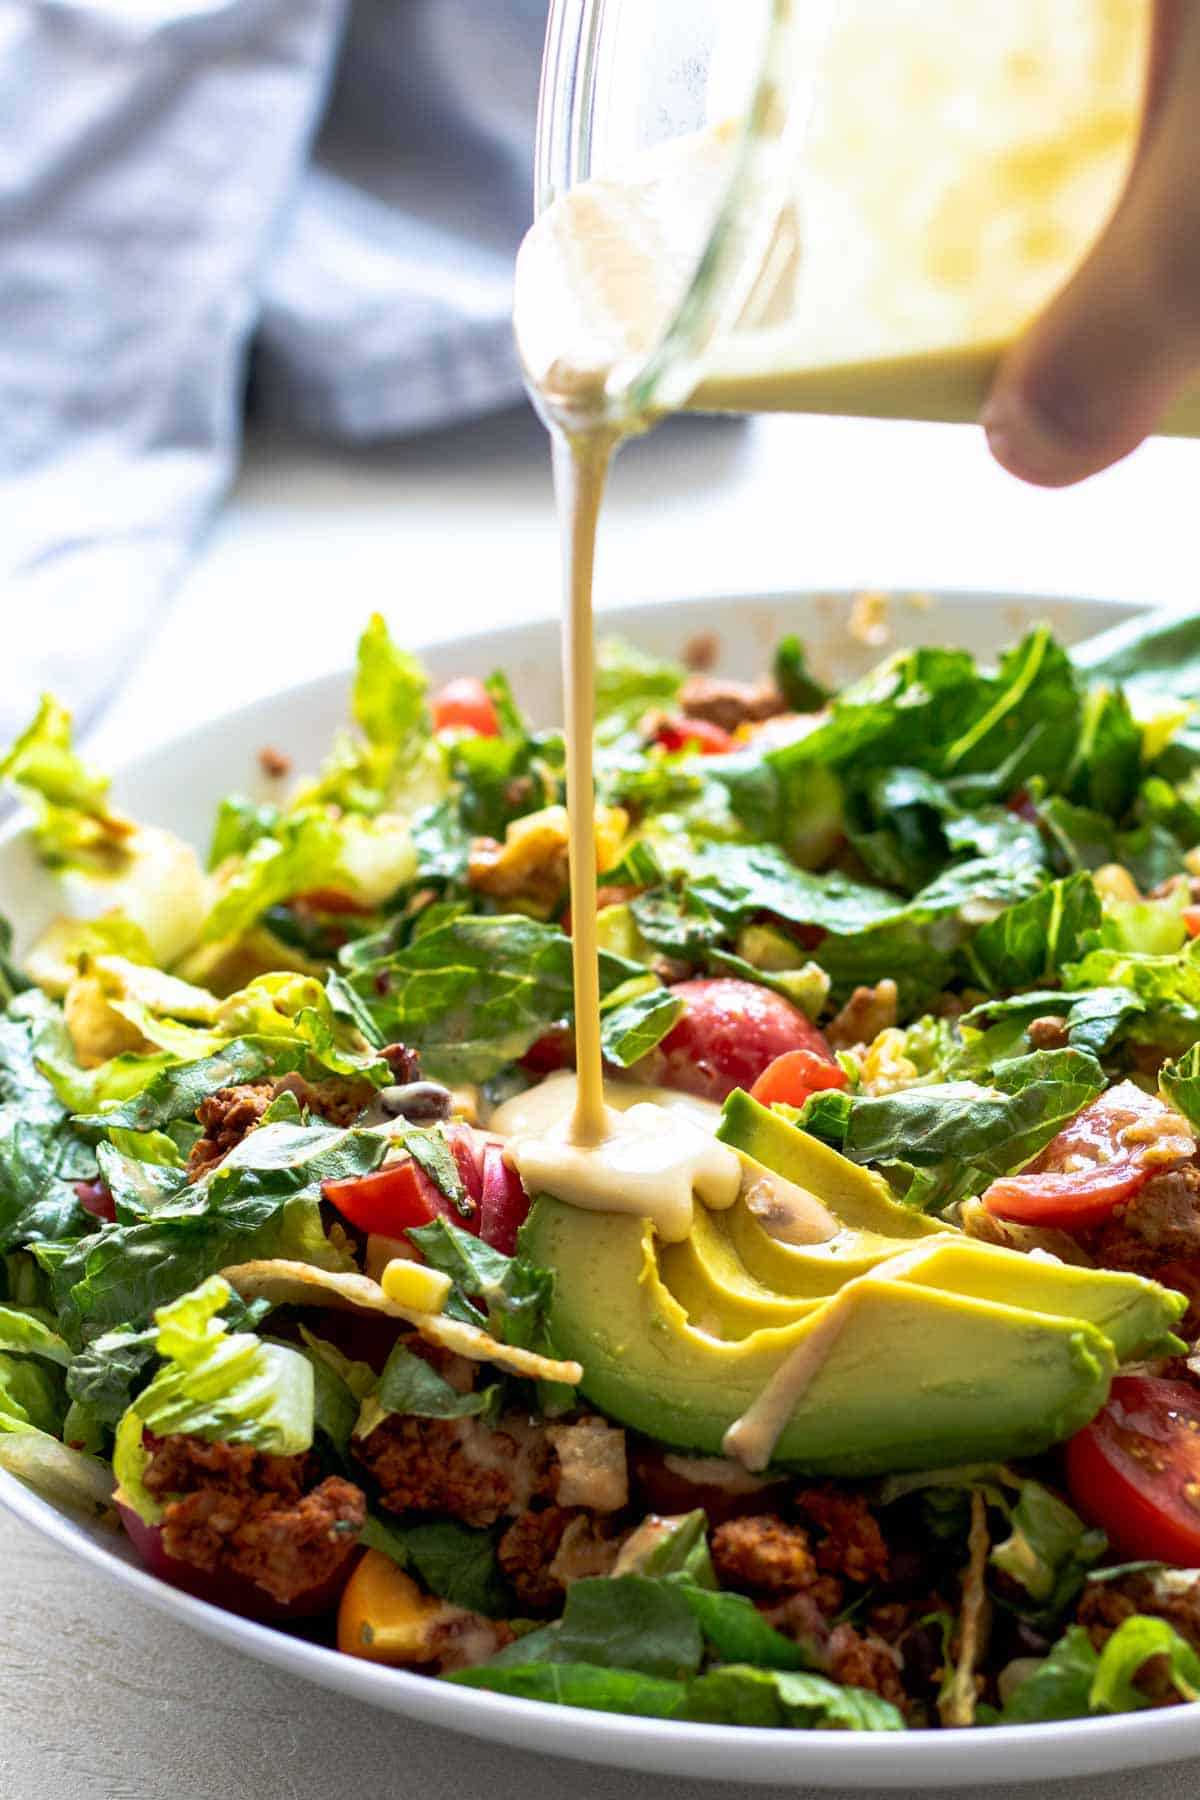 Dressing drizzled over green salad with avocado and tomatoes.